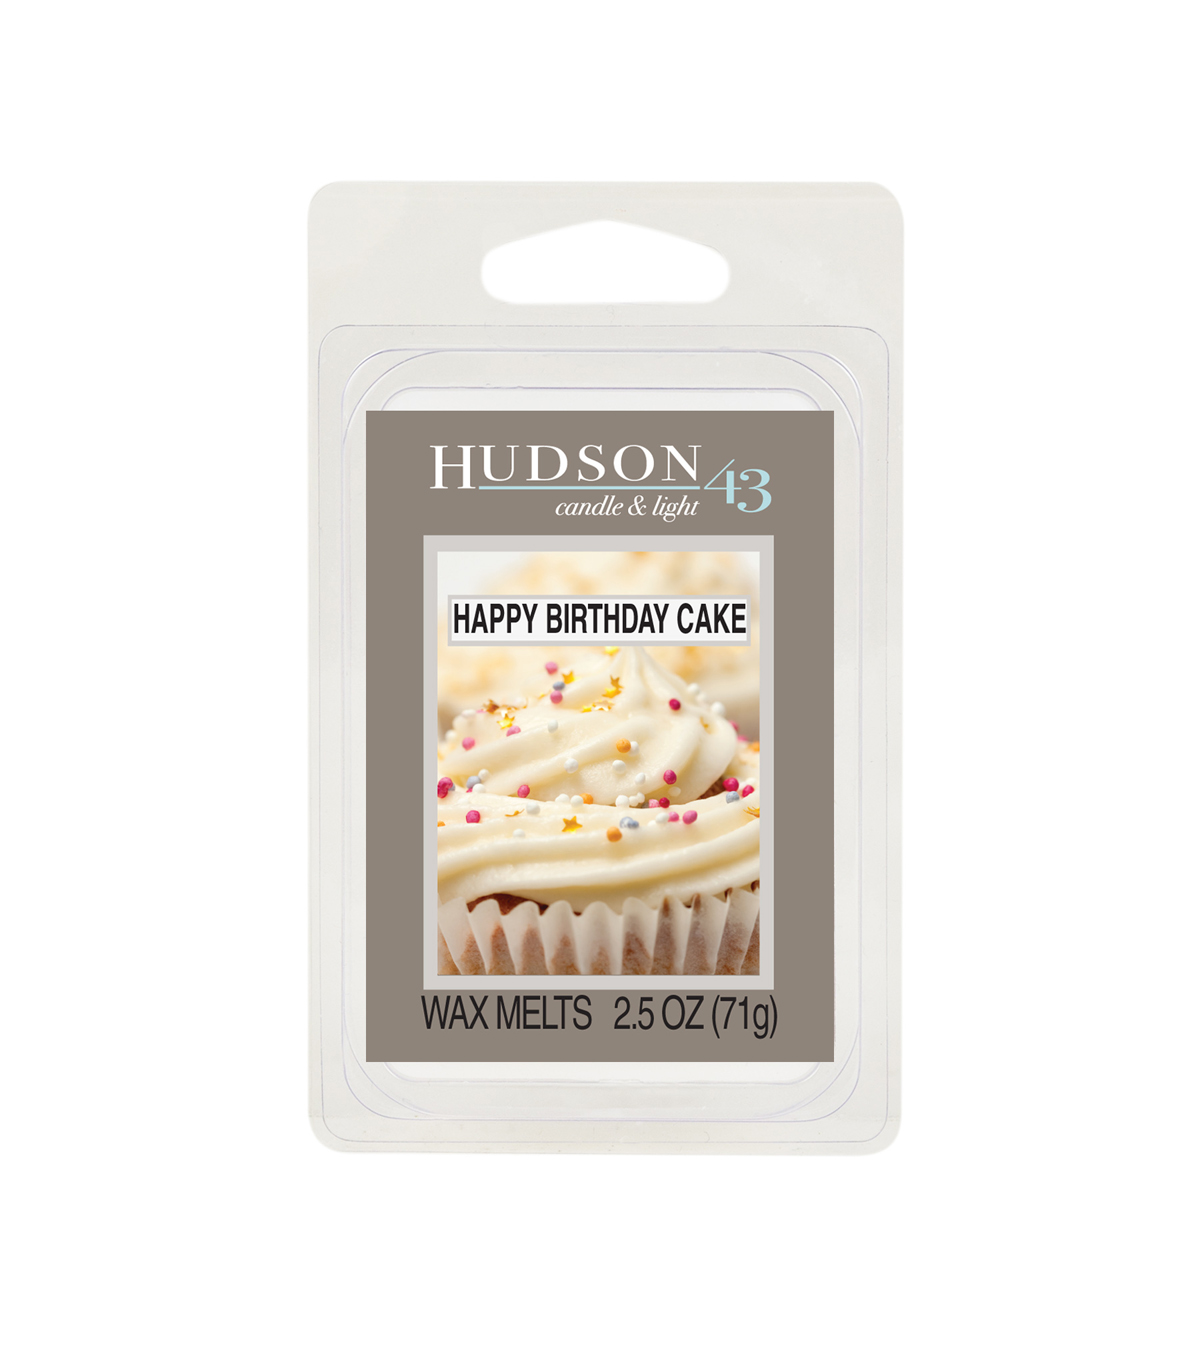 Hudson 43™ Candle & Light Collection Wax Melt-Happy Birthday Cake